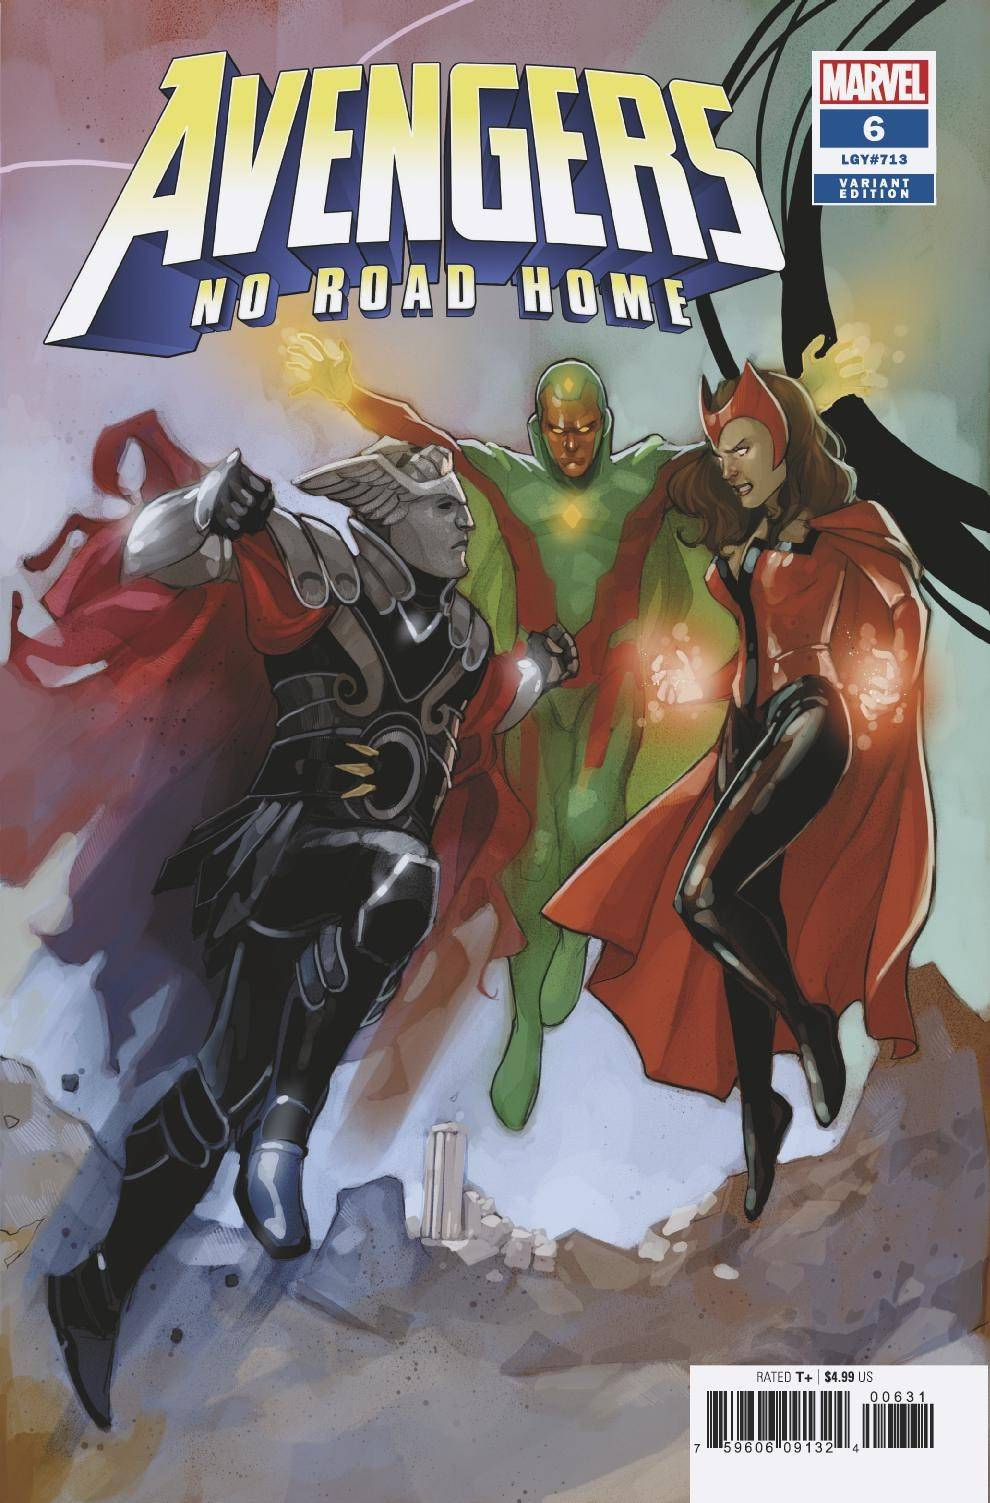 AVENGERS NO ROAD HOME #6 (OF 10) NOTO CONNECTING VAR